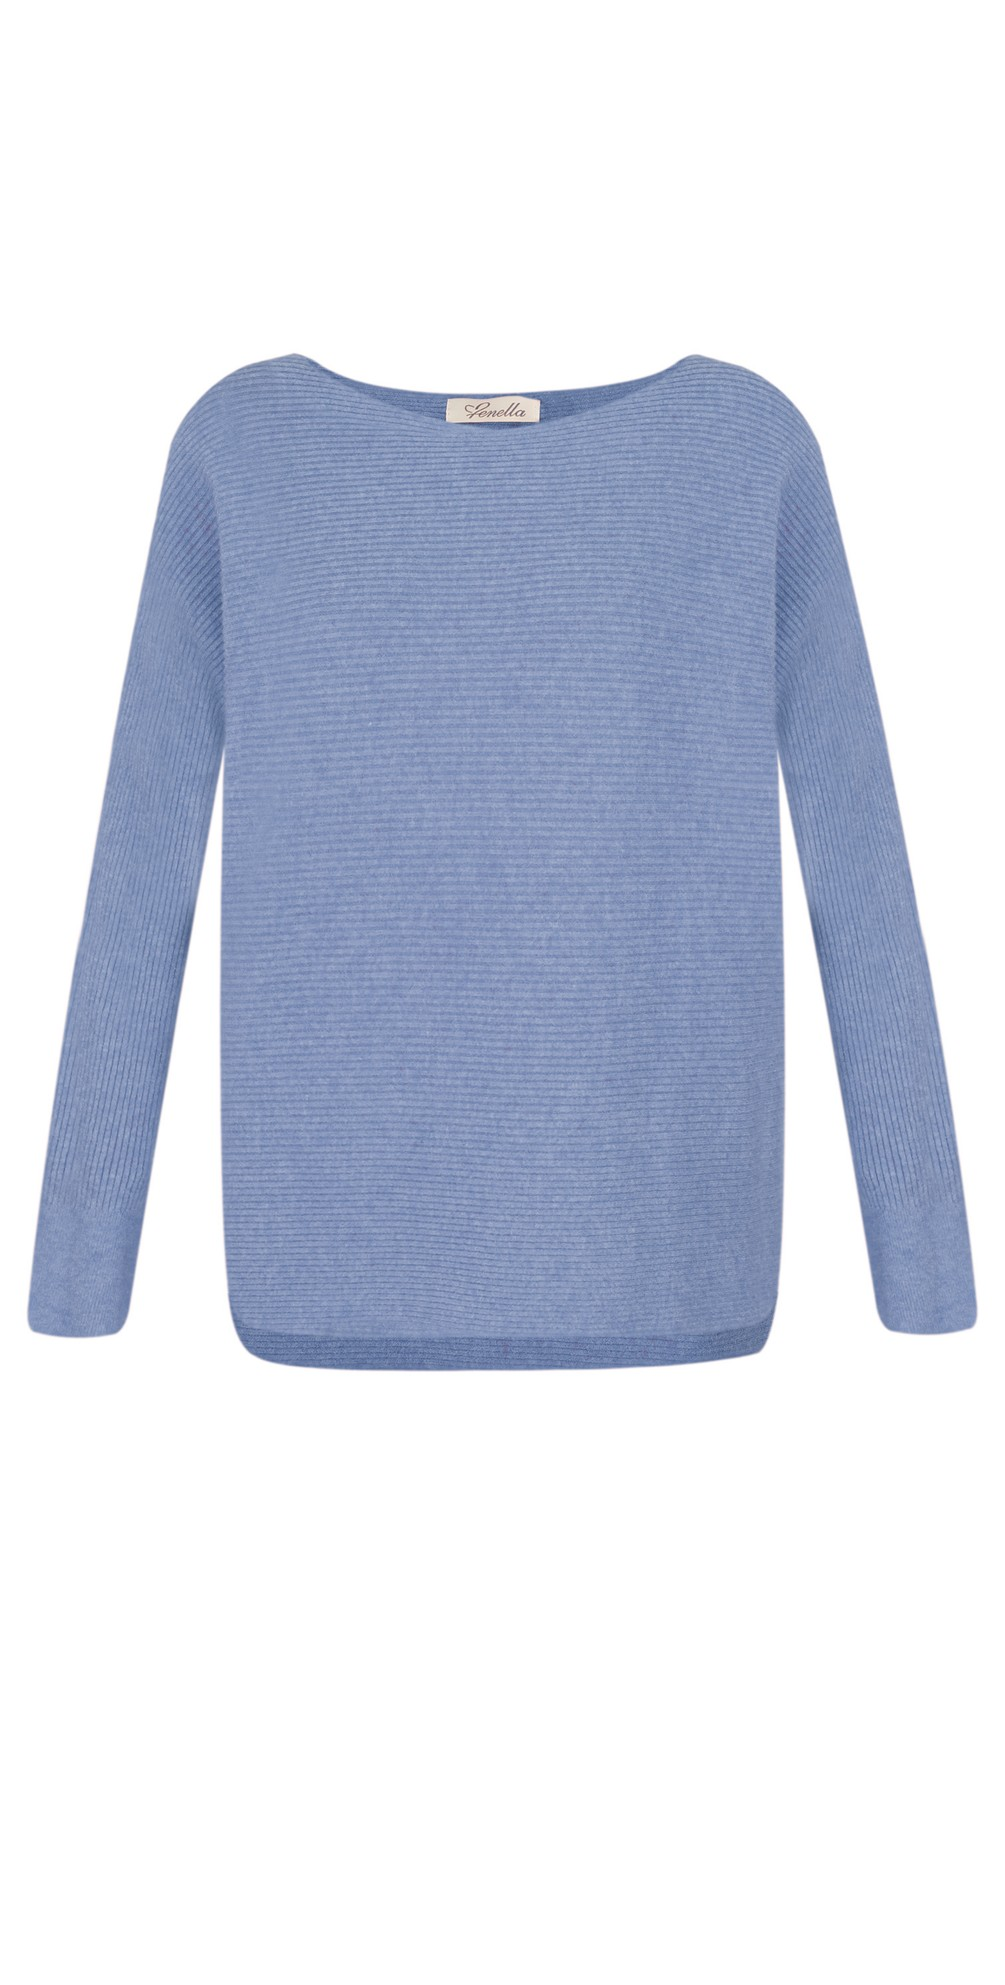 Janey Rib Easyfit Jumper main image